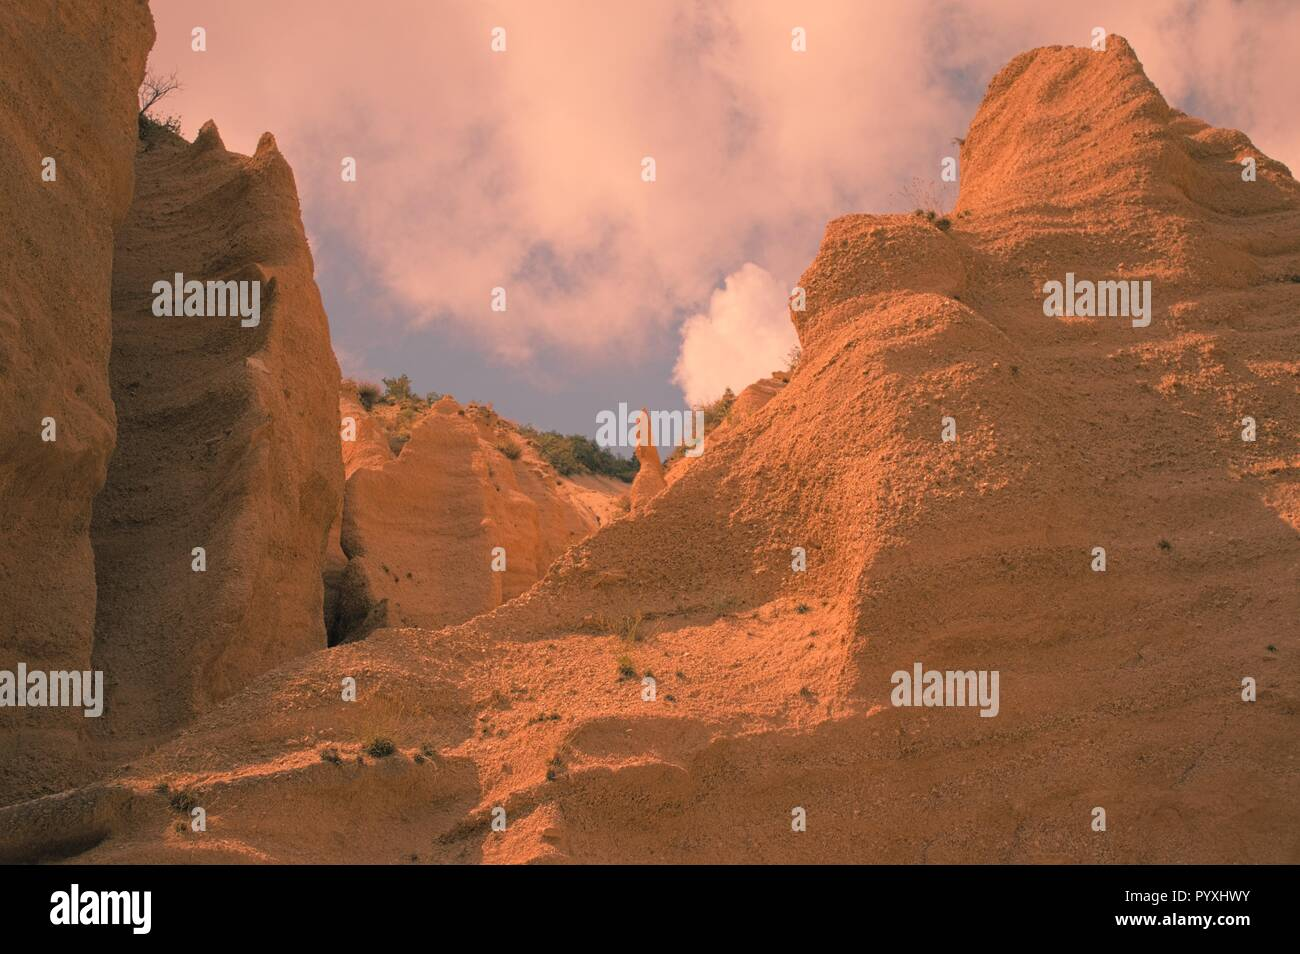 Lame Rosse, the Italian Canyon (Fiastra, Marche, Italy) - Stock Image